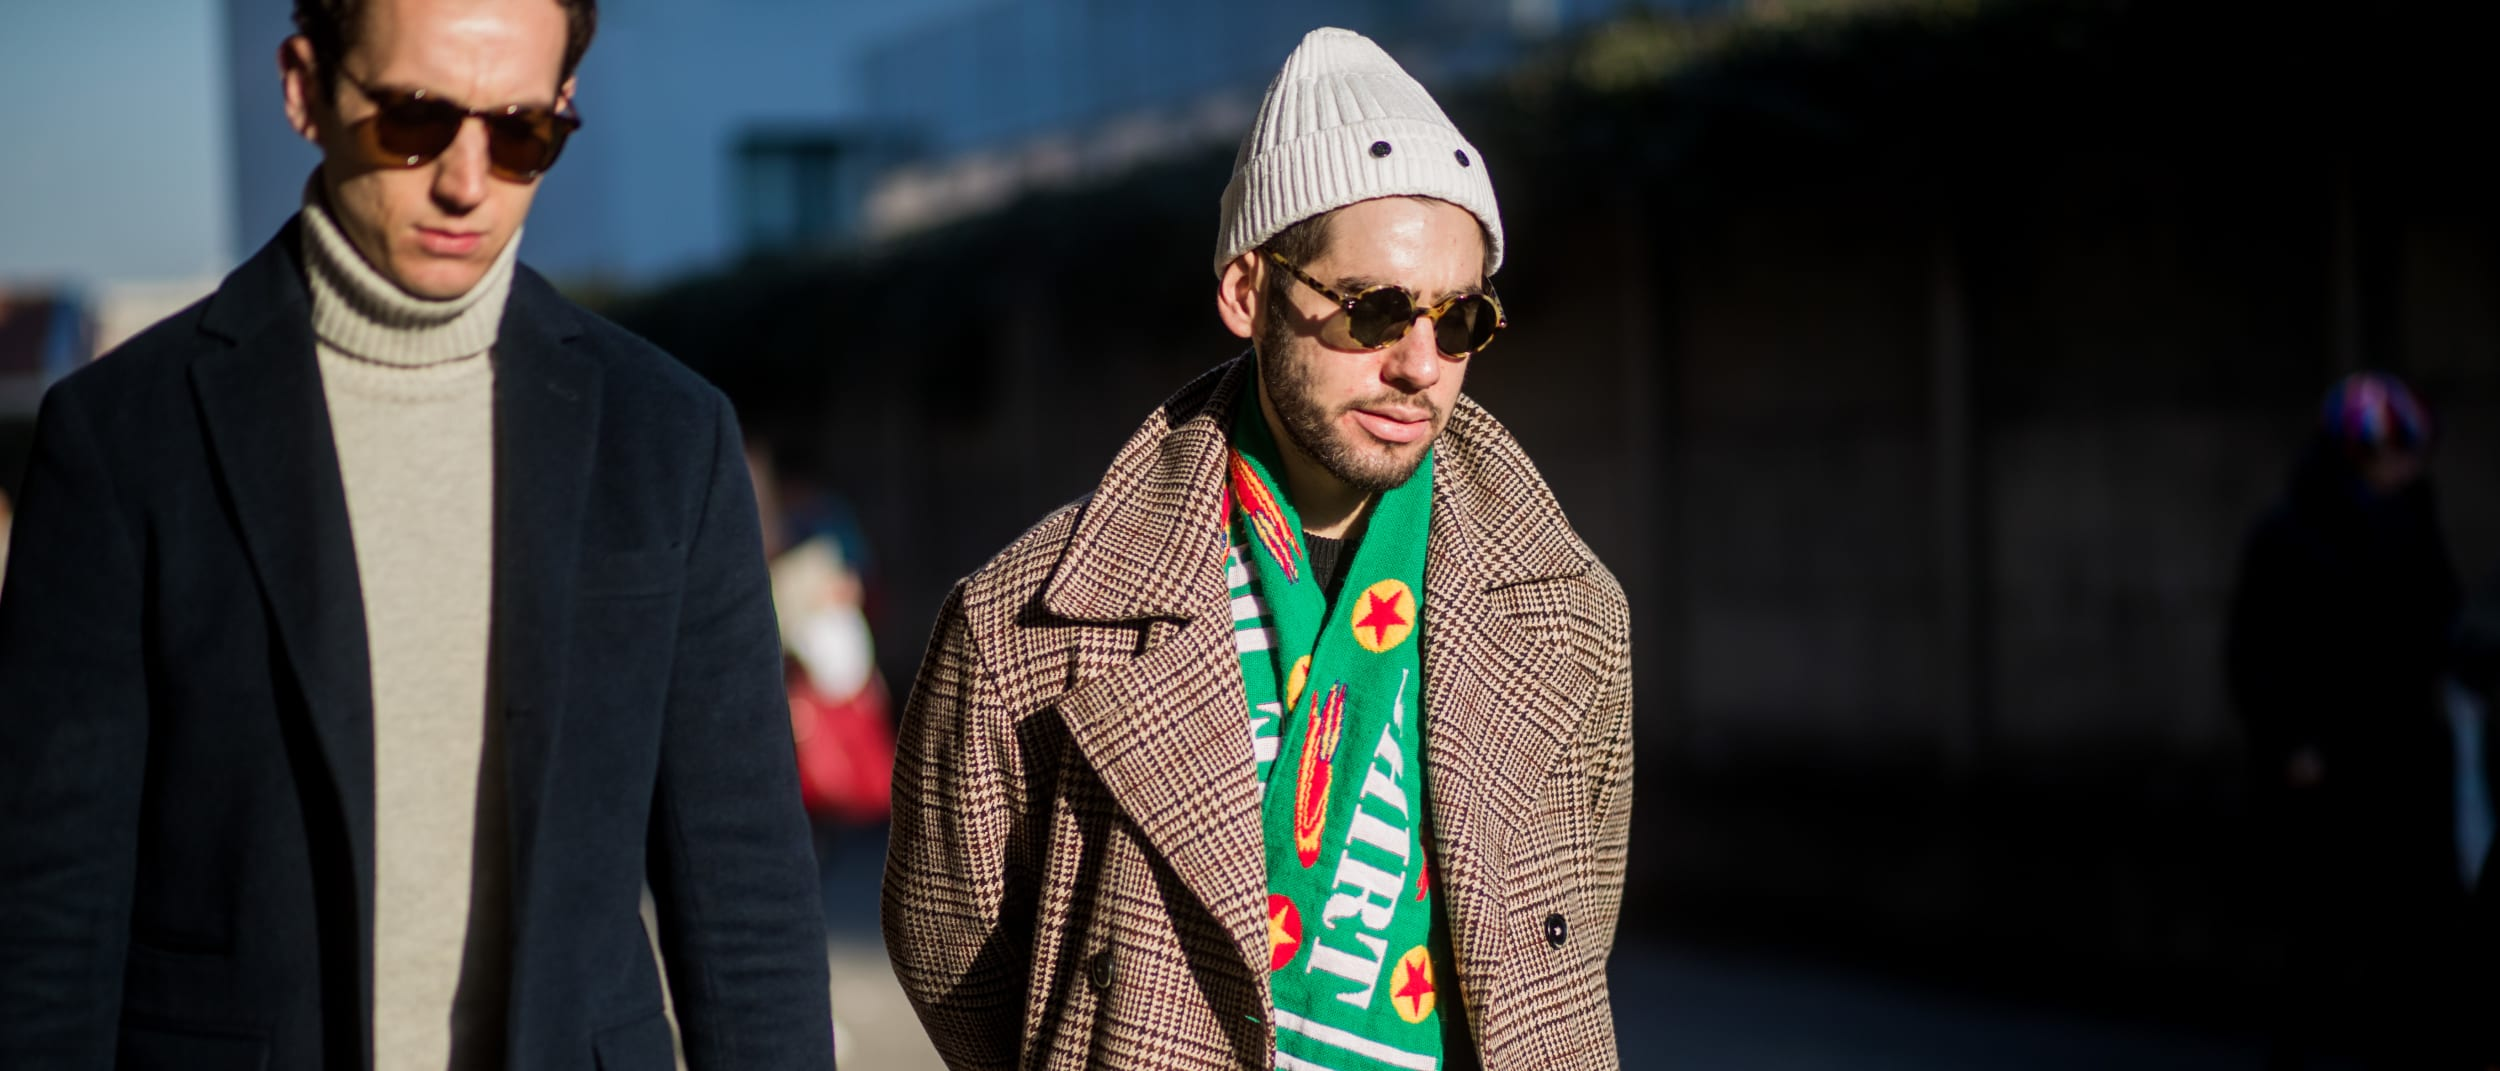 5 trends every guy should try this winter